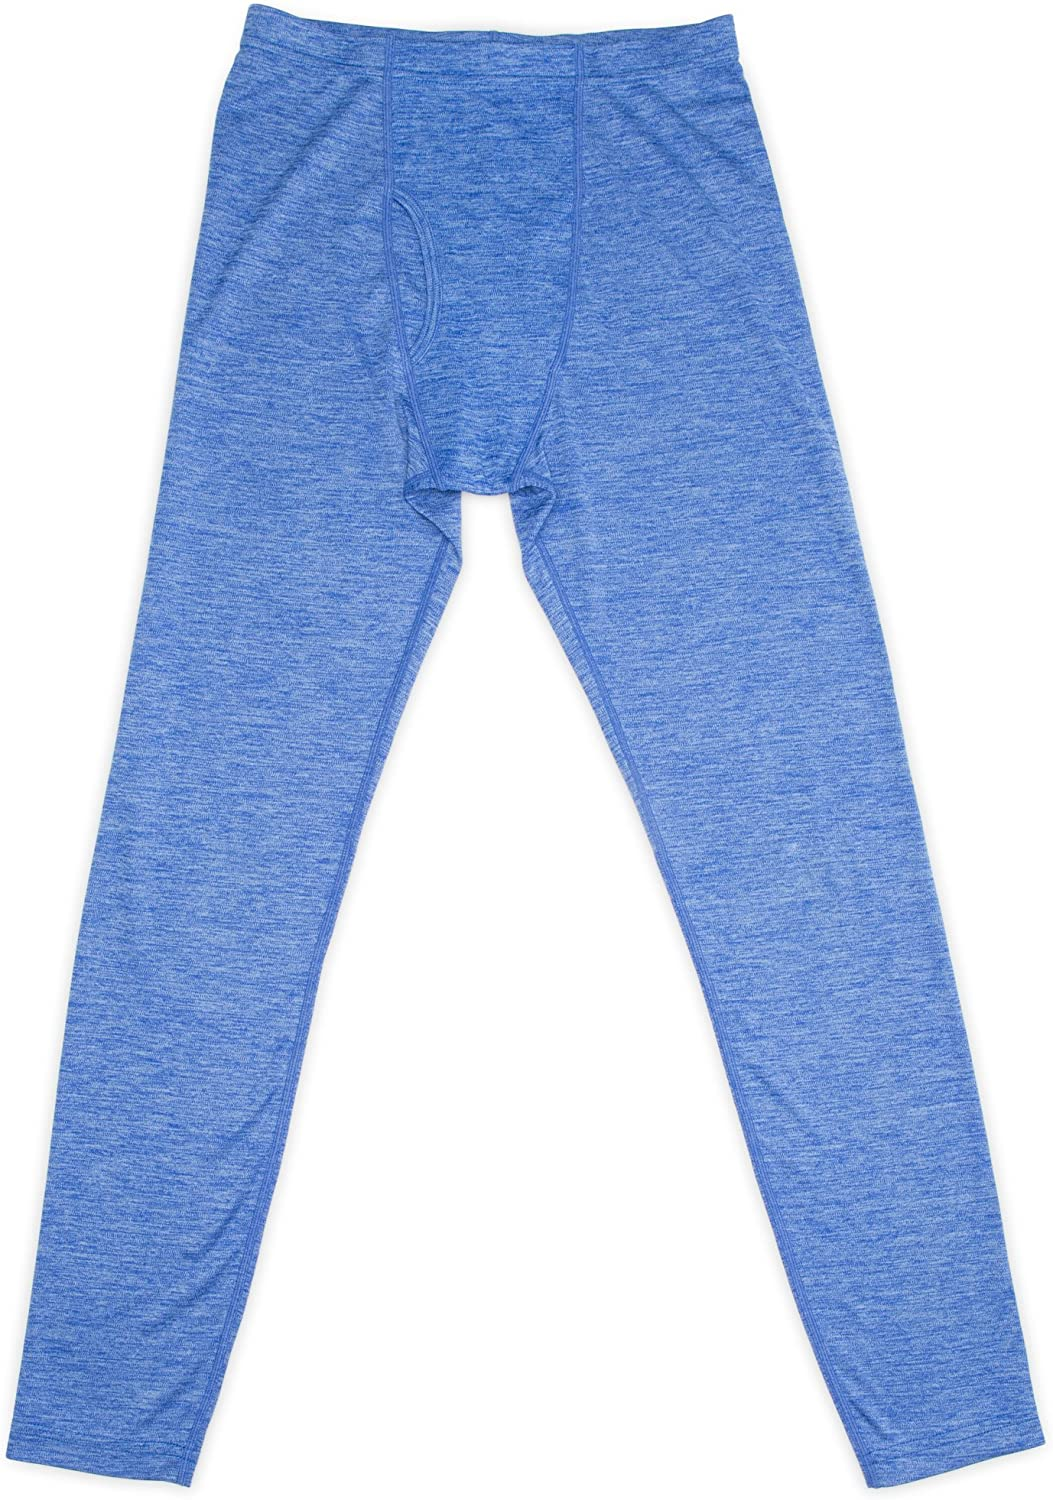 Long Sleeve Shirt with Thumbholes and Pants Trimfit Boys Ultra Soft Thermal Underwear Top and Bottom 2 Piece Set